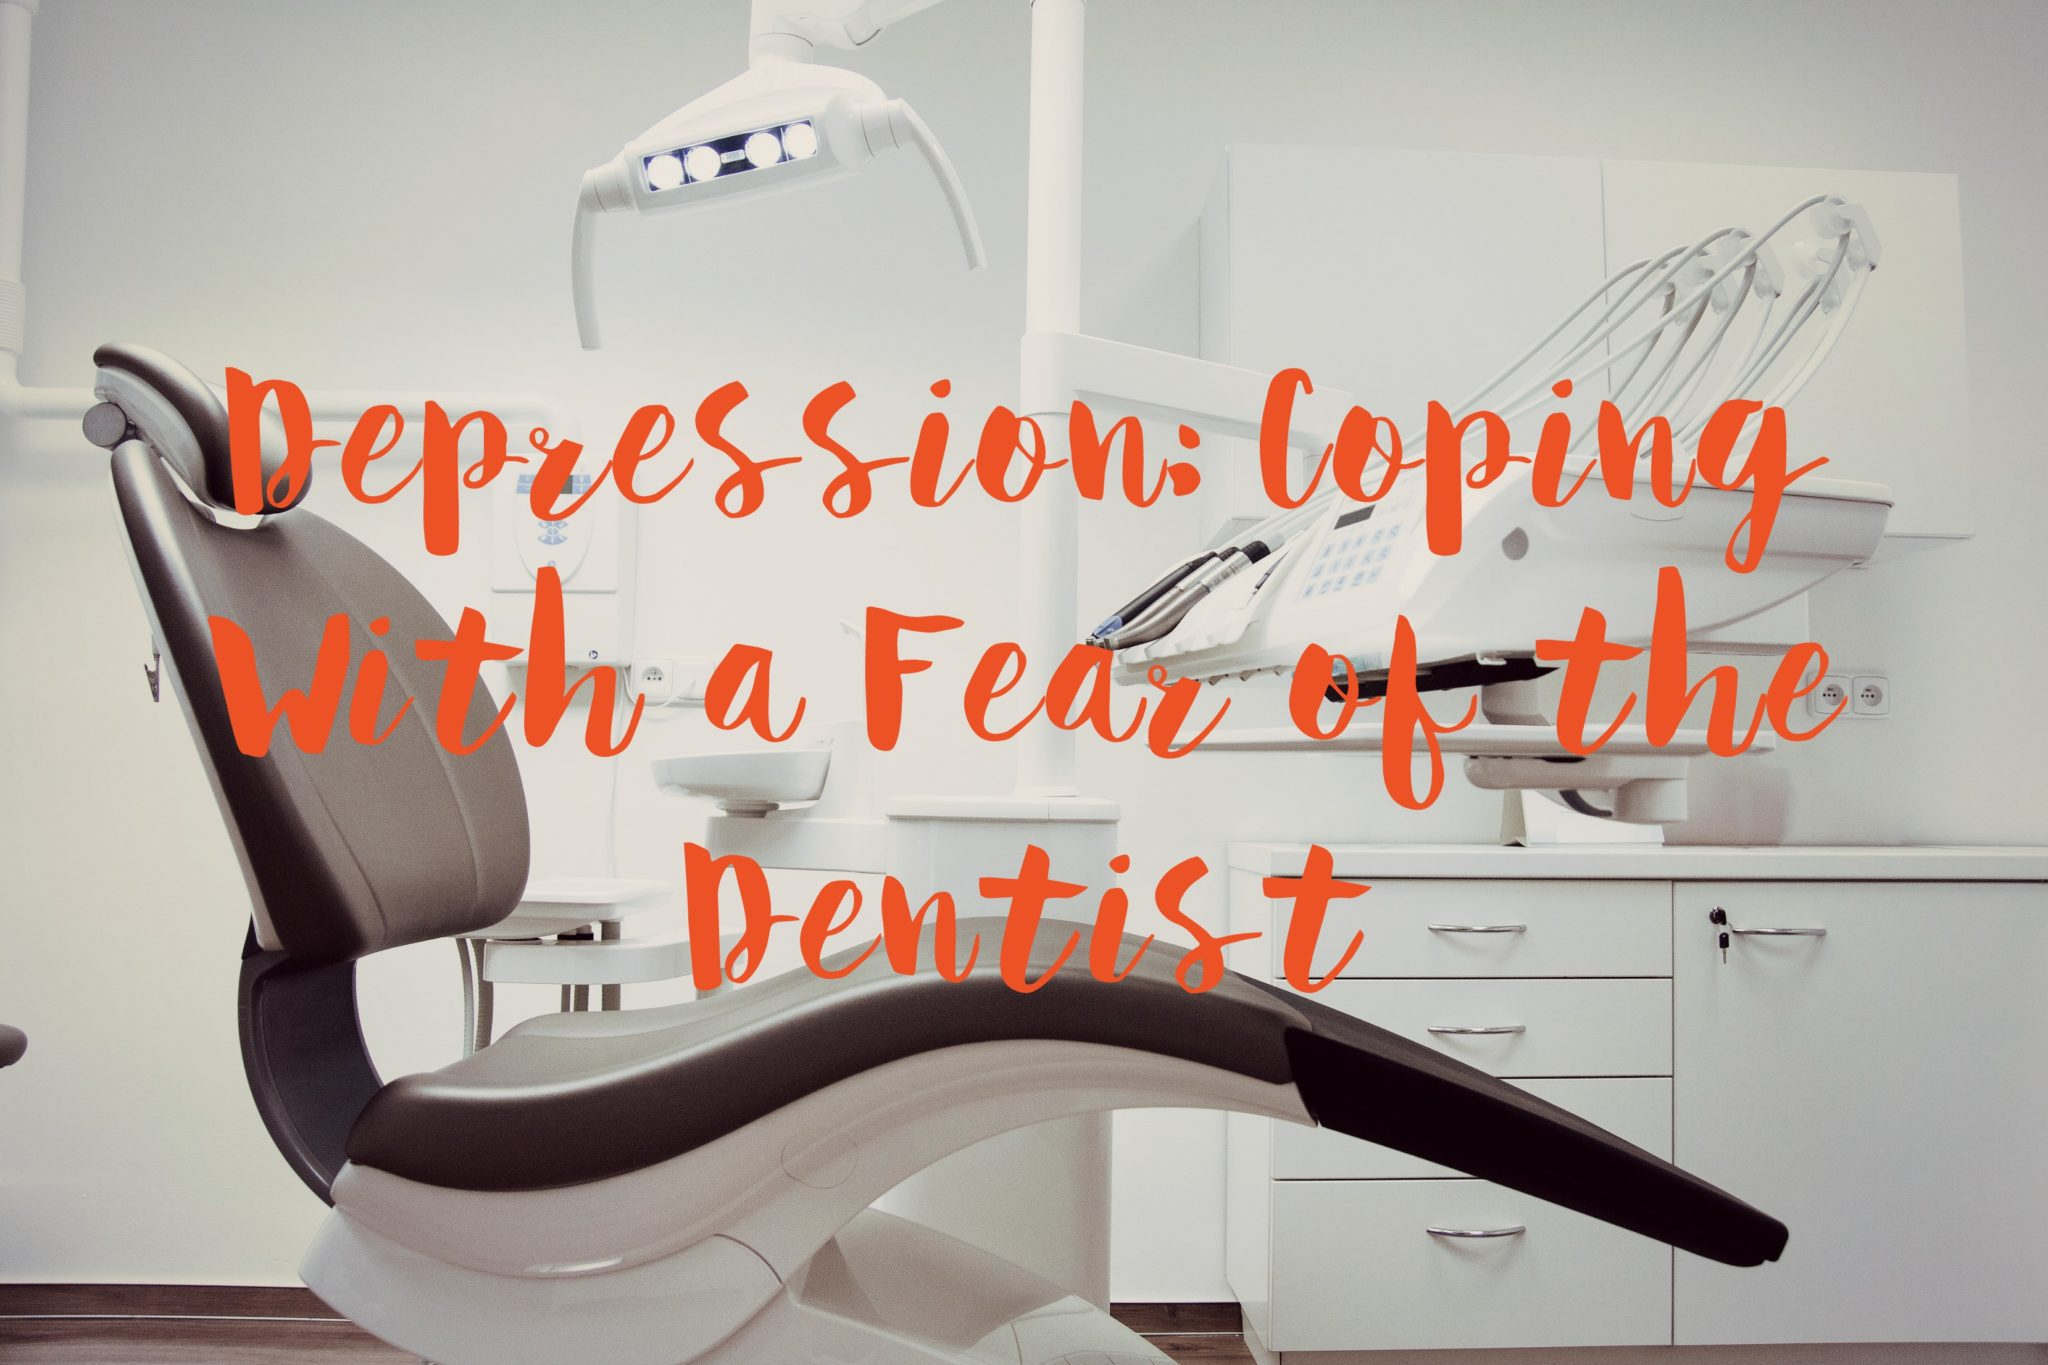 Depression Coping With a Fear of the Dentist